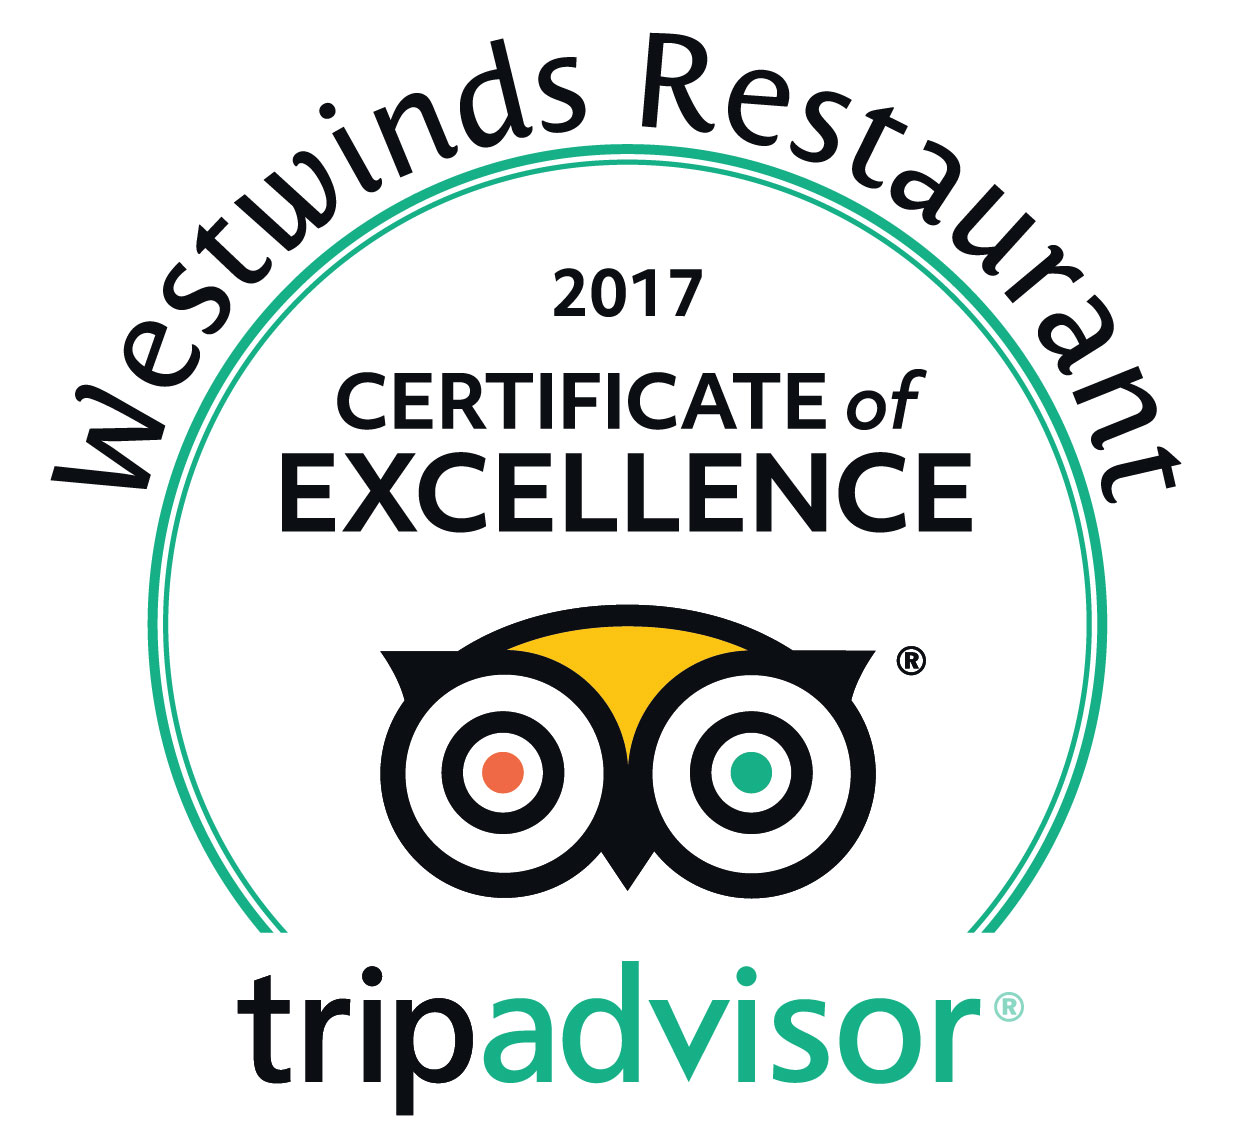 Westwinds Restaurant Certificate of Excellence on Trip Advisor